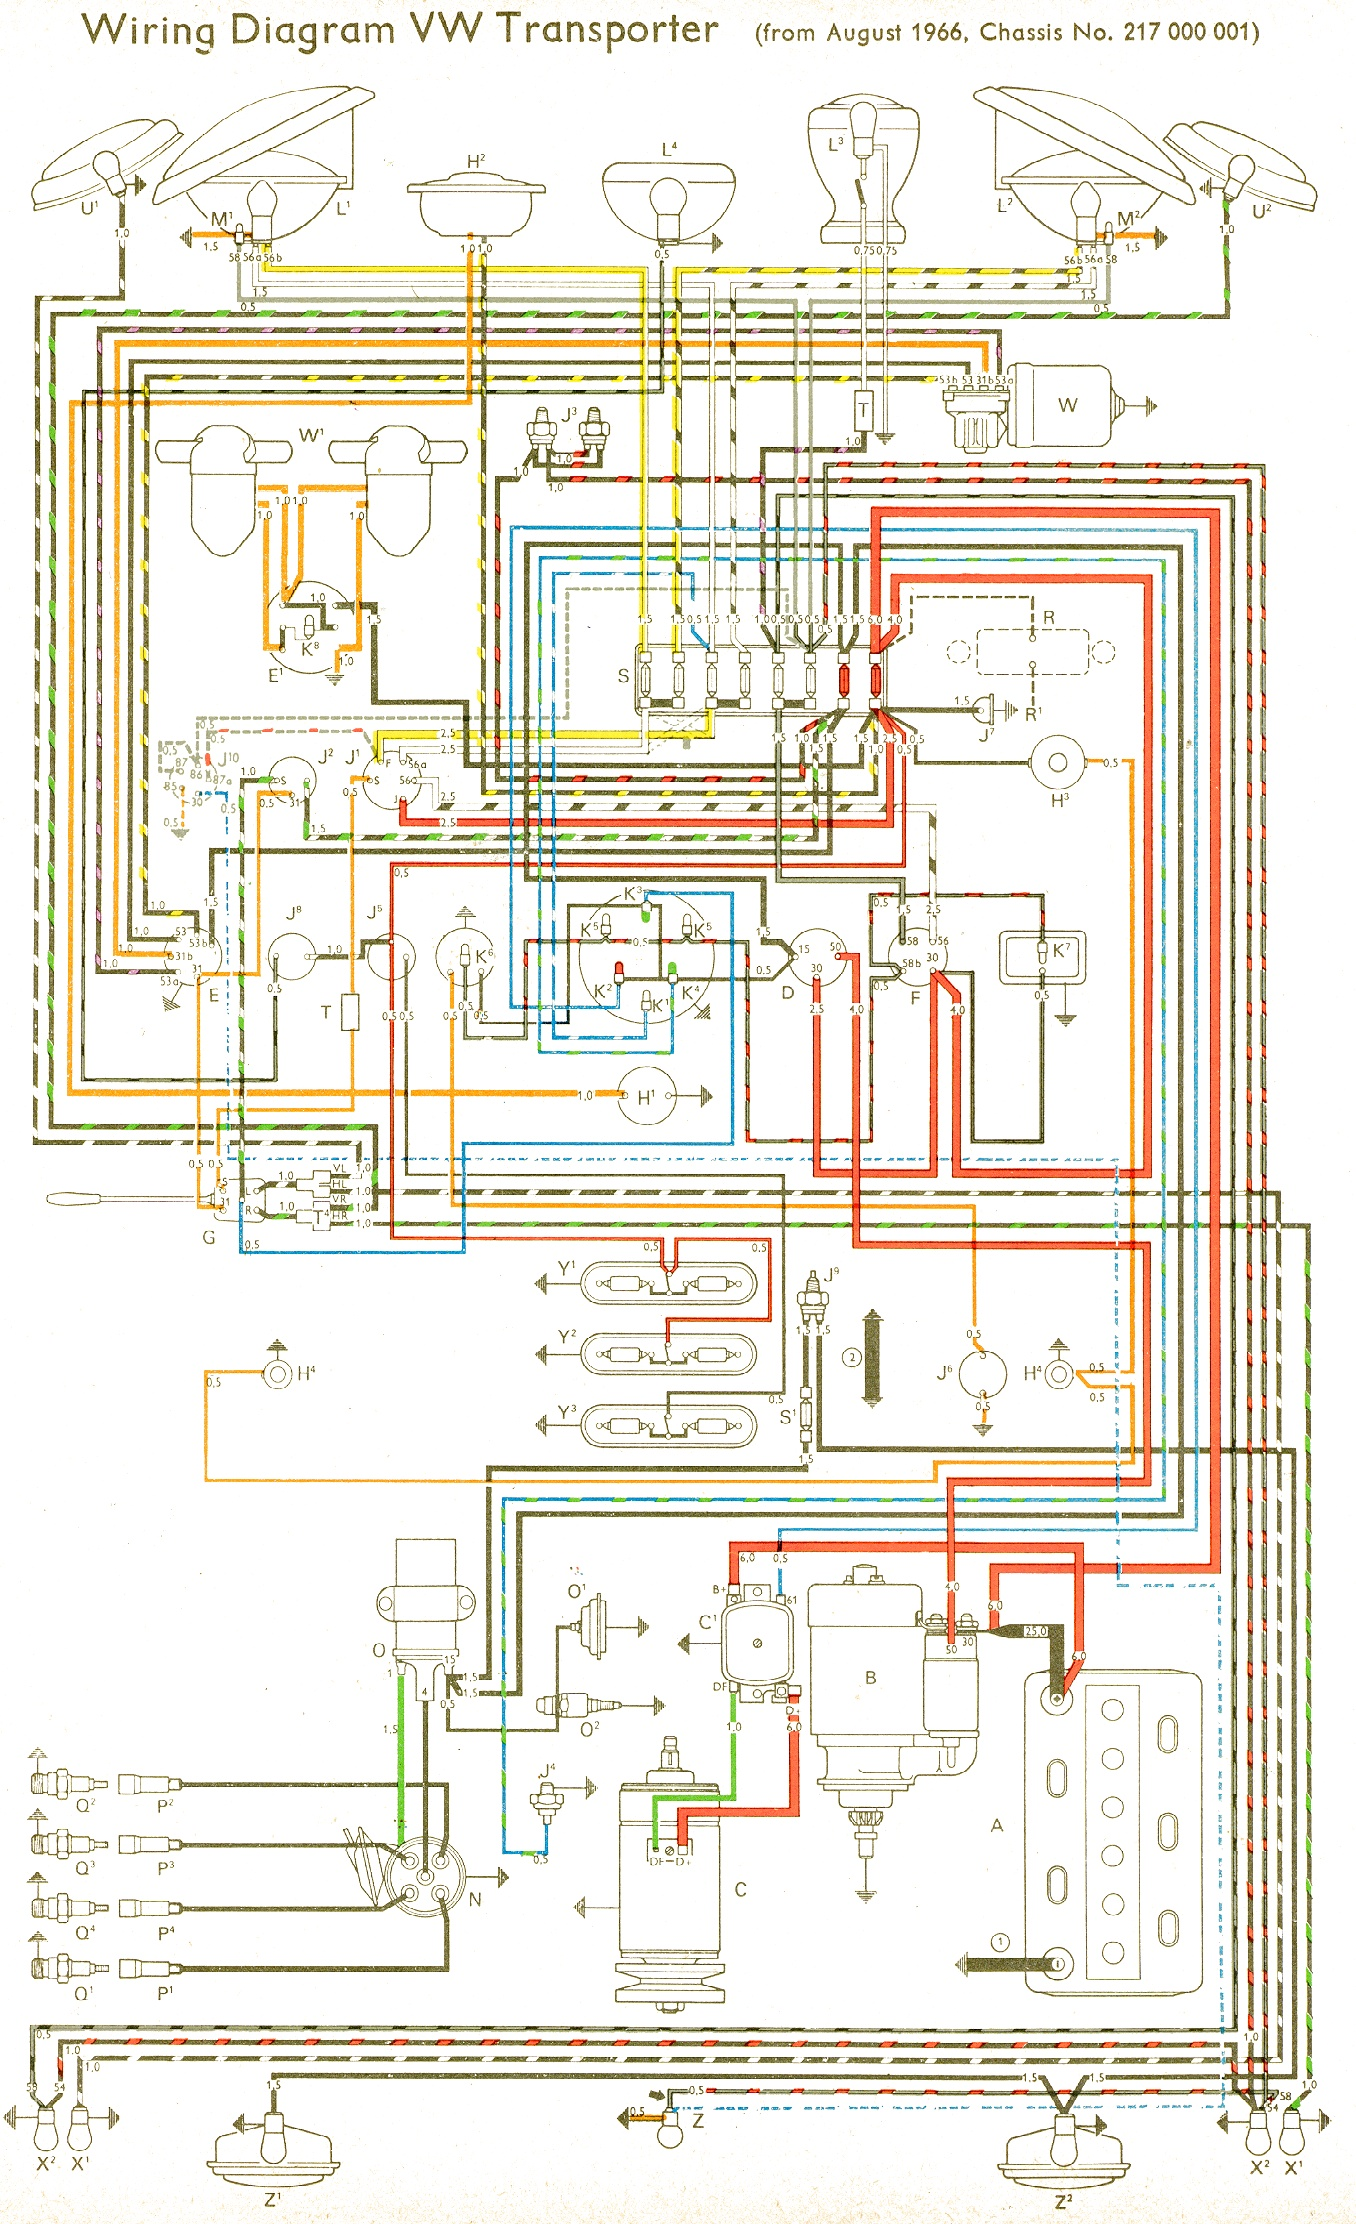 bus 66 vw bus wiring diagram 1965 vw bus wiring diagram \u2022 wiring diagrams vw t4 electric window wiring diagram at gsmx.co